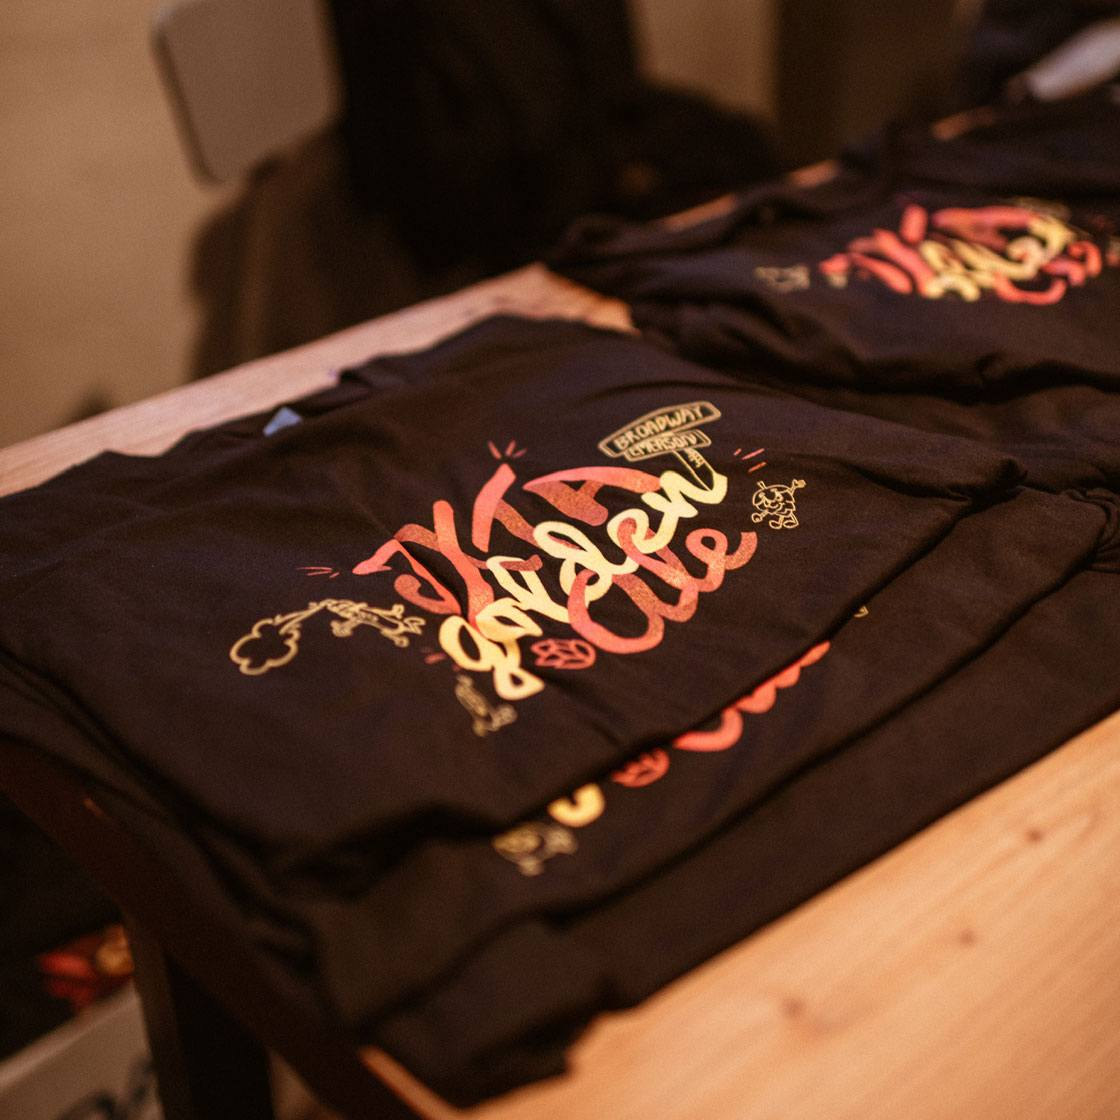 Decorative screen printed shirts with a decorative design with the words JXTA golden ale